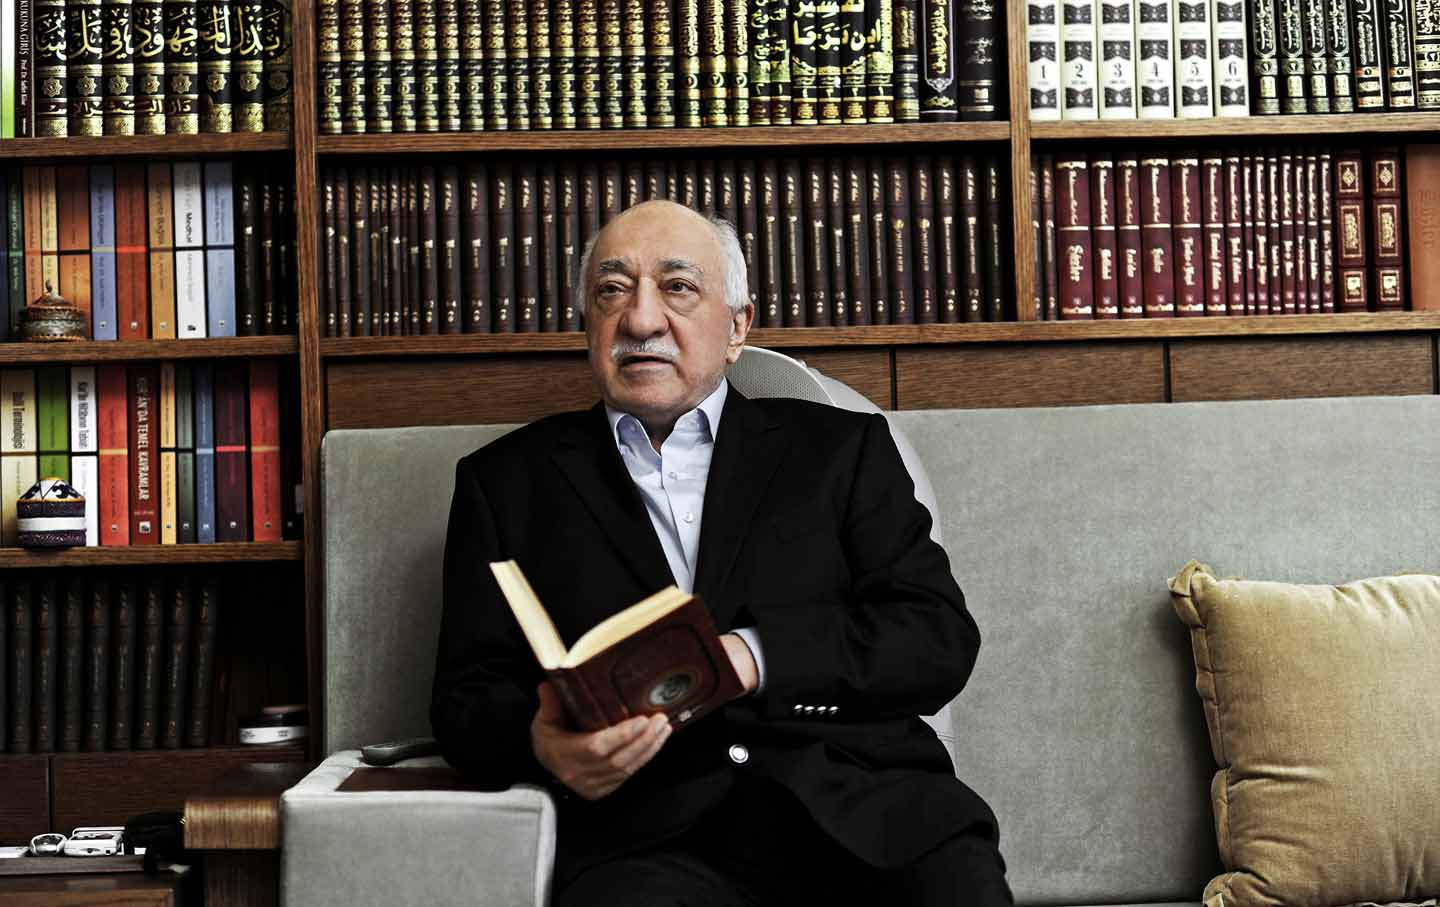 Fethullah Gulen reading